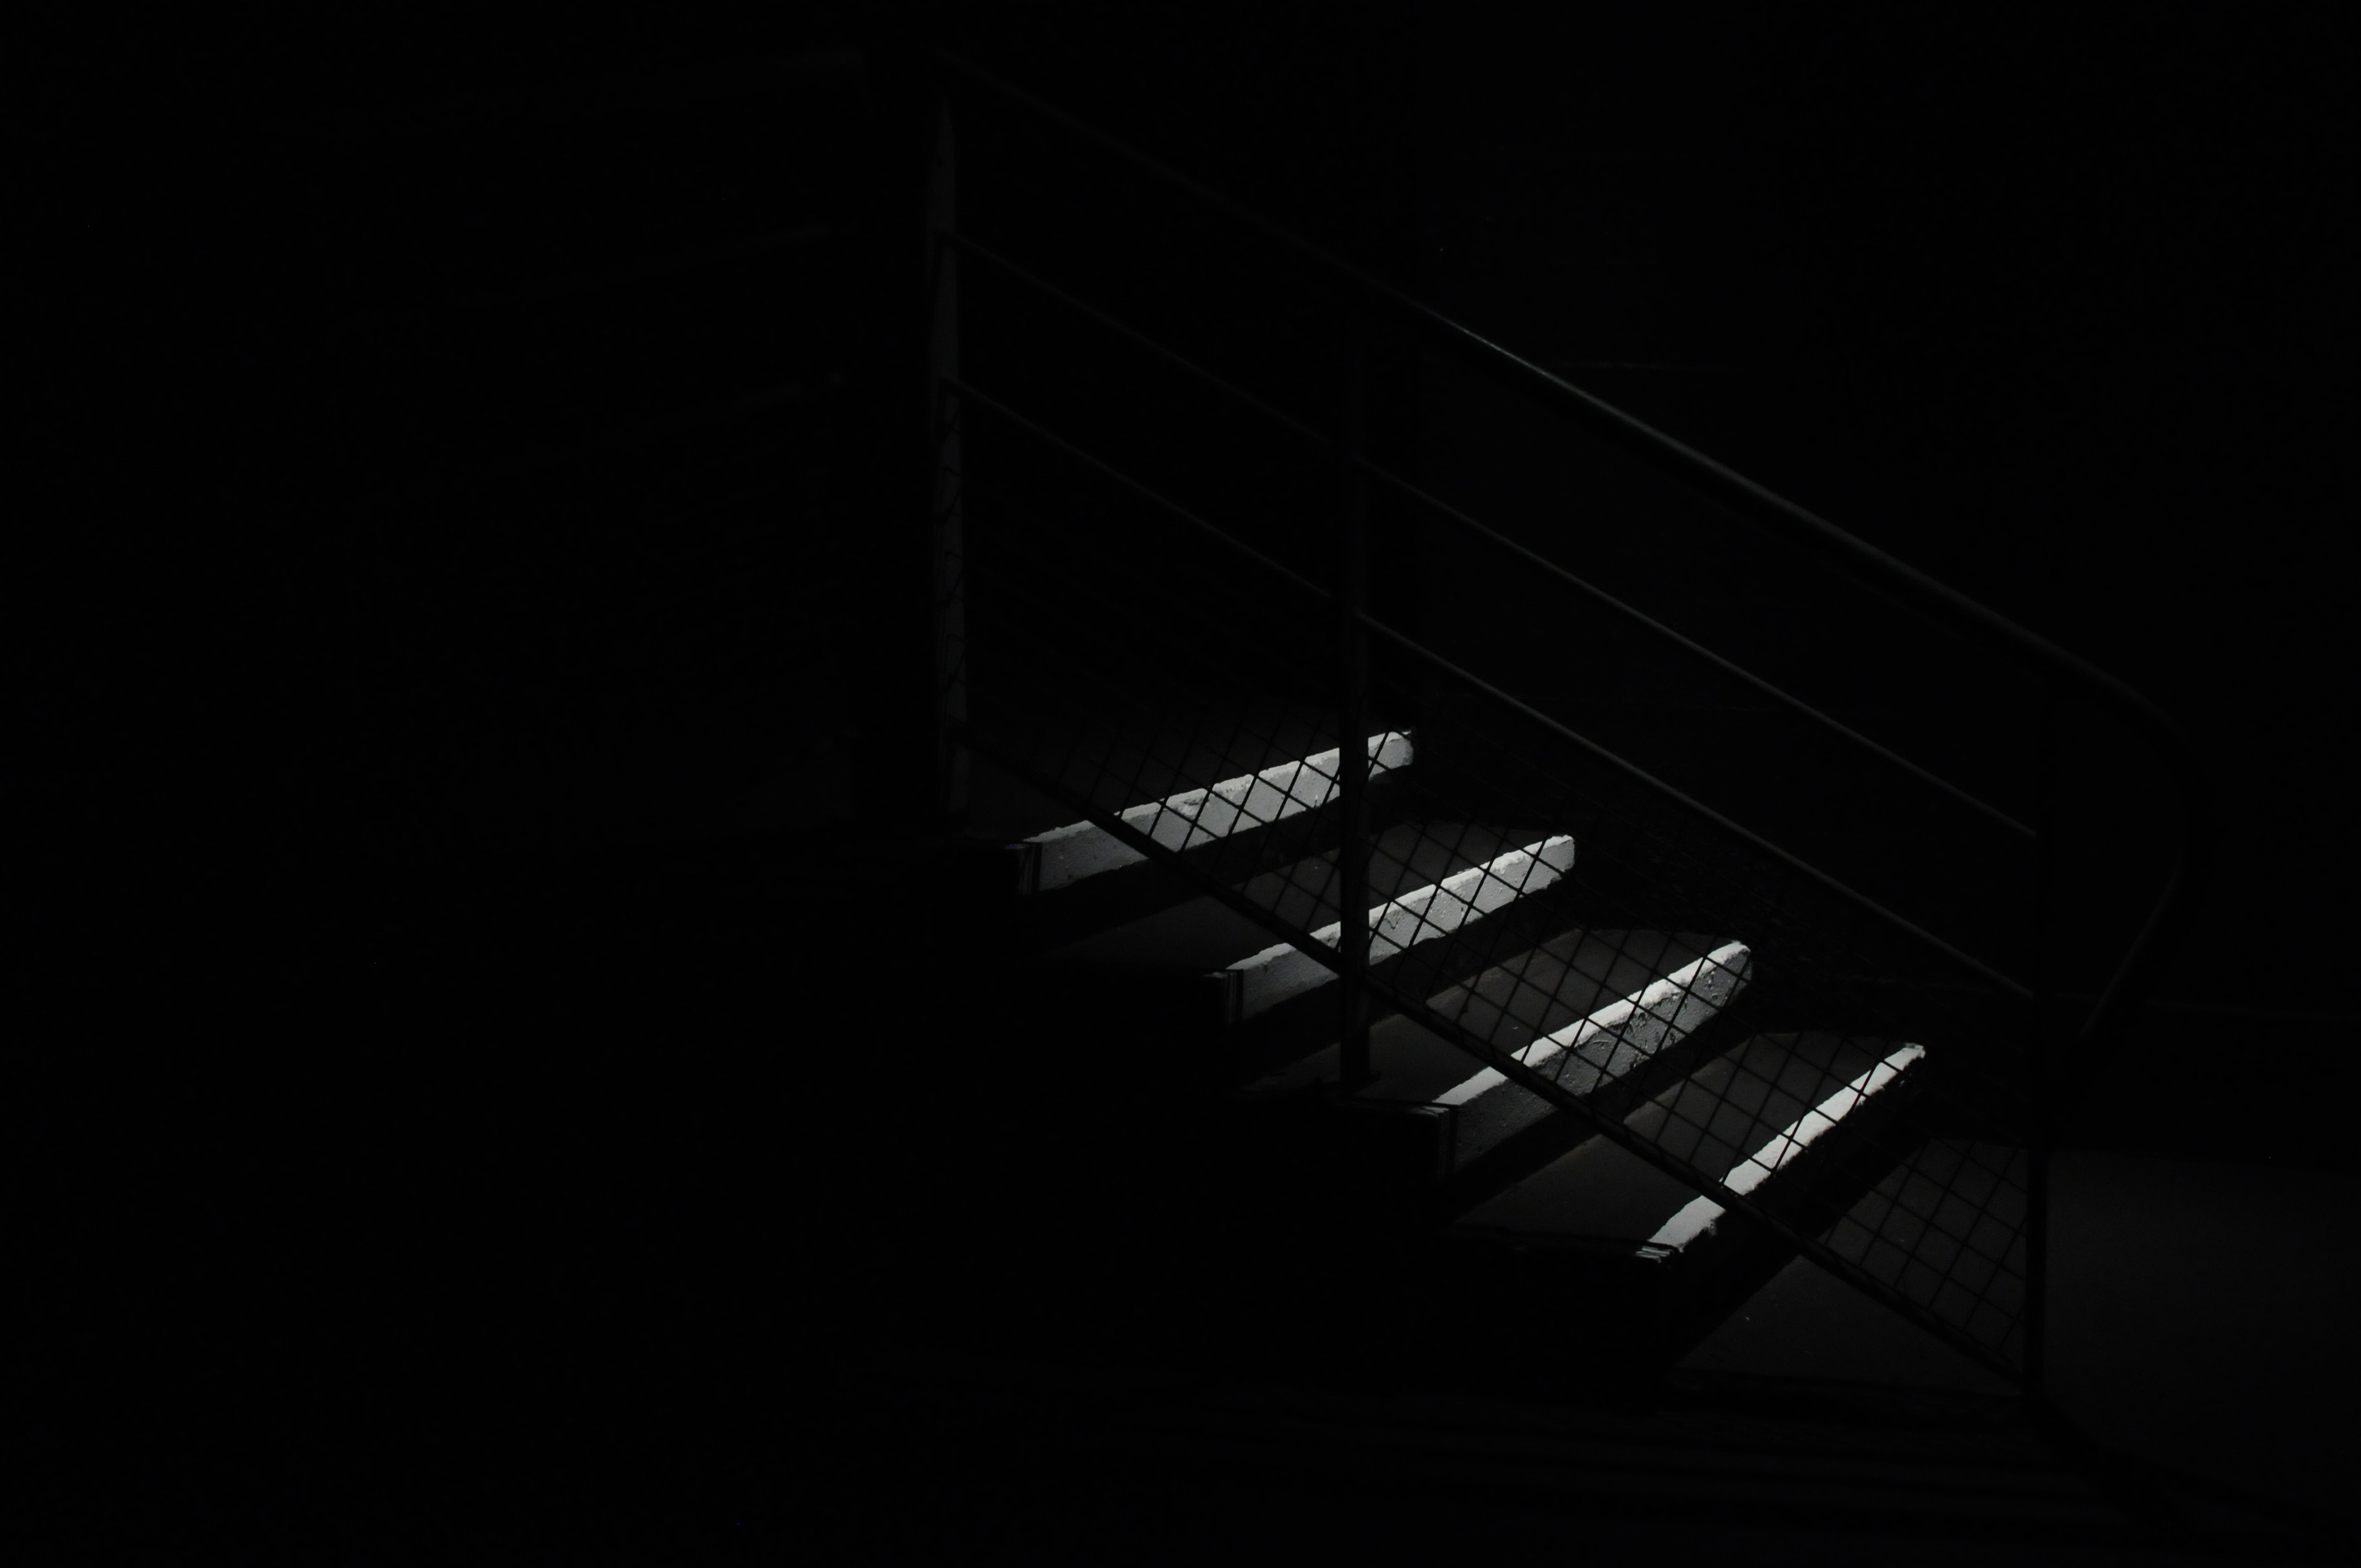 A staircase and fence style railing exposed amidst darkness